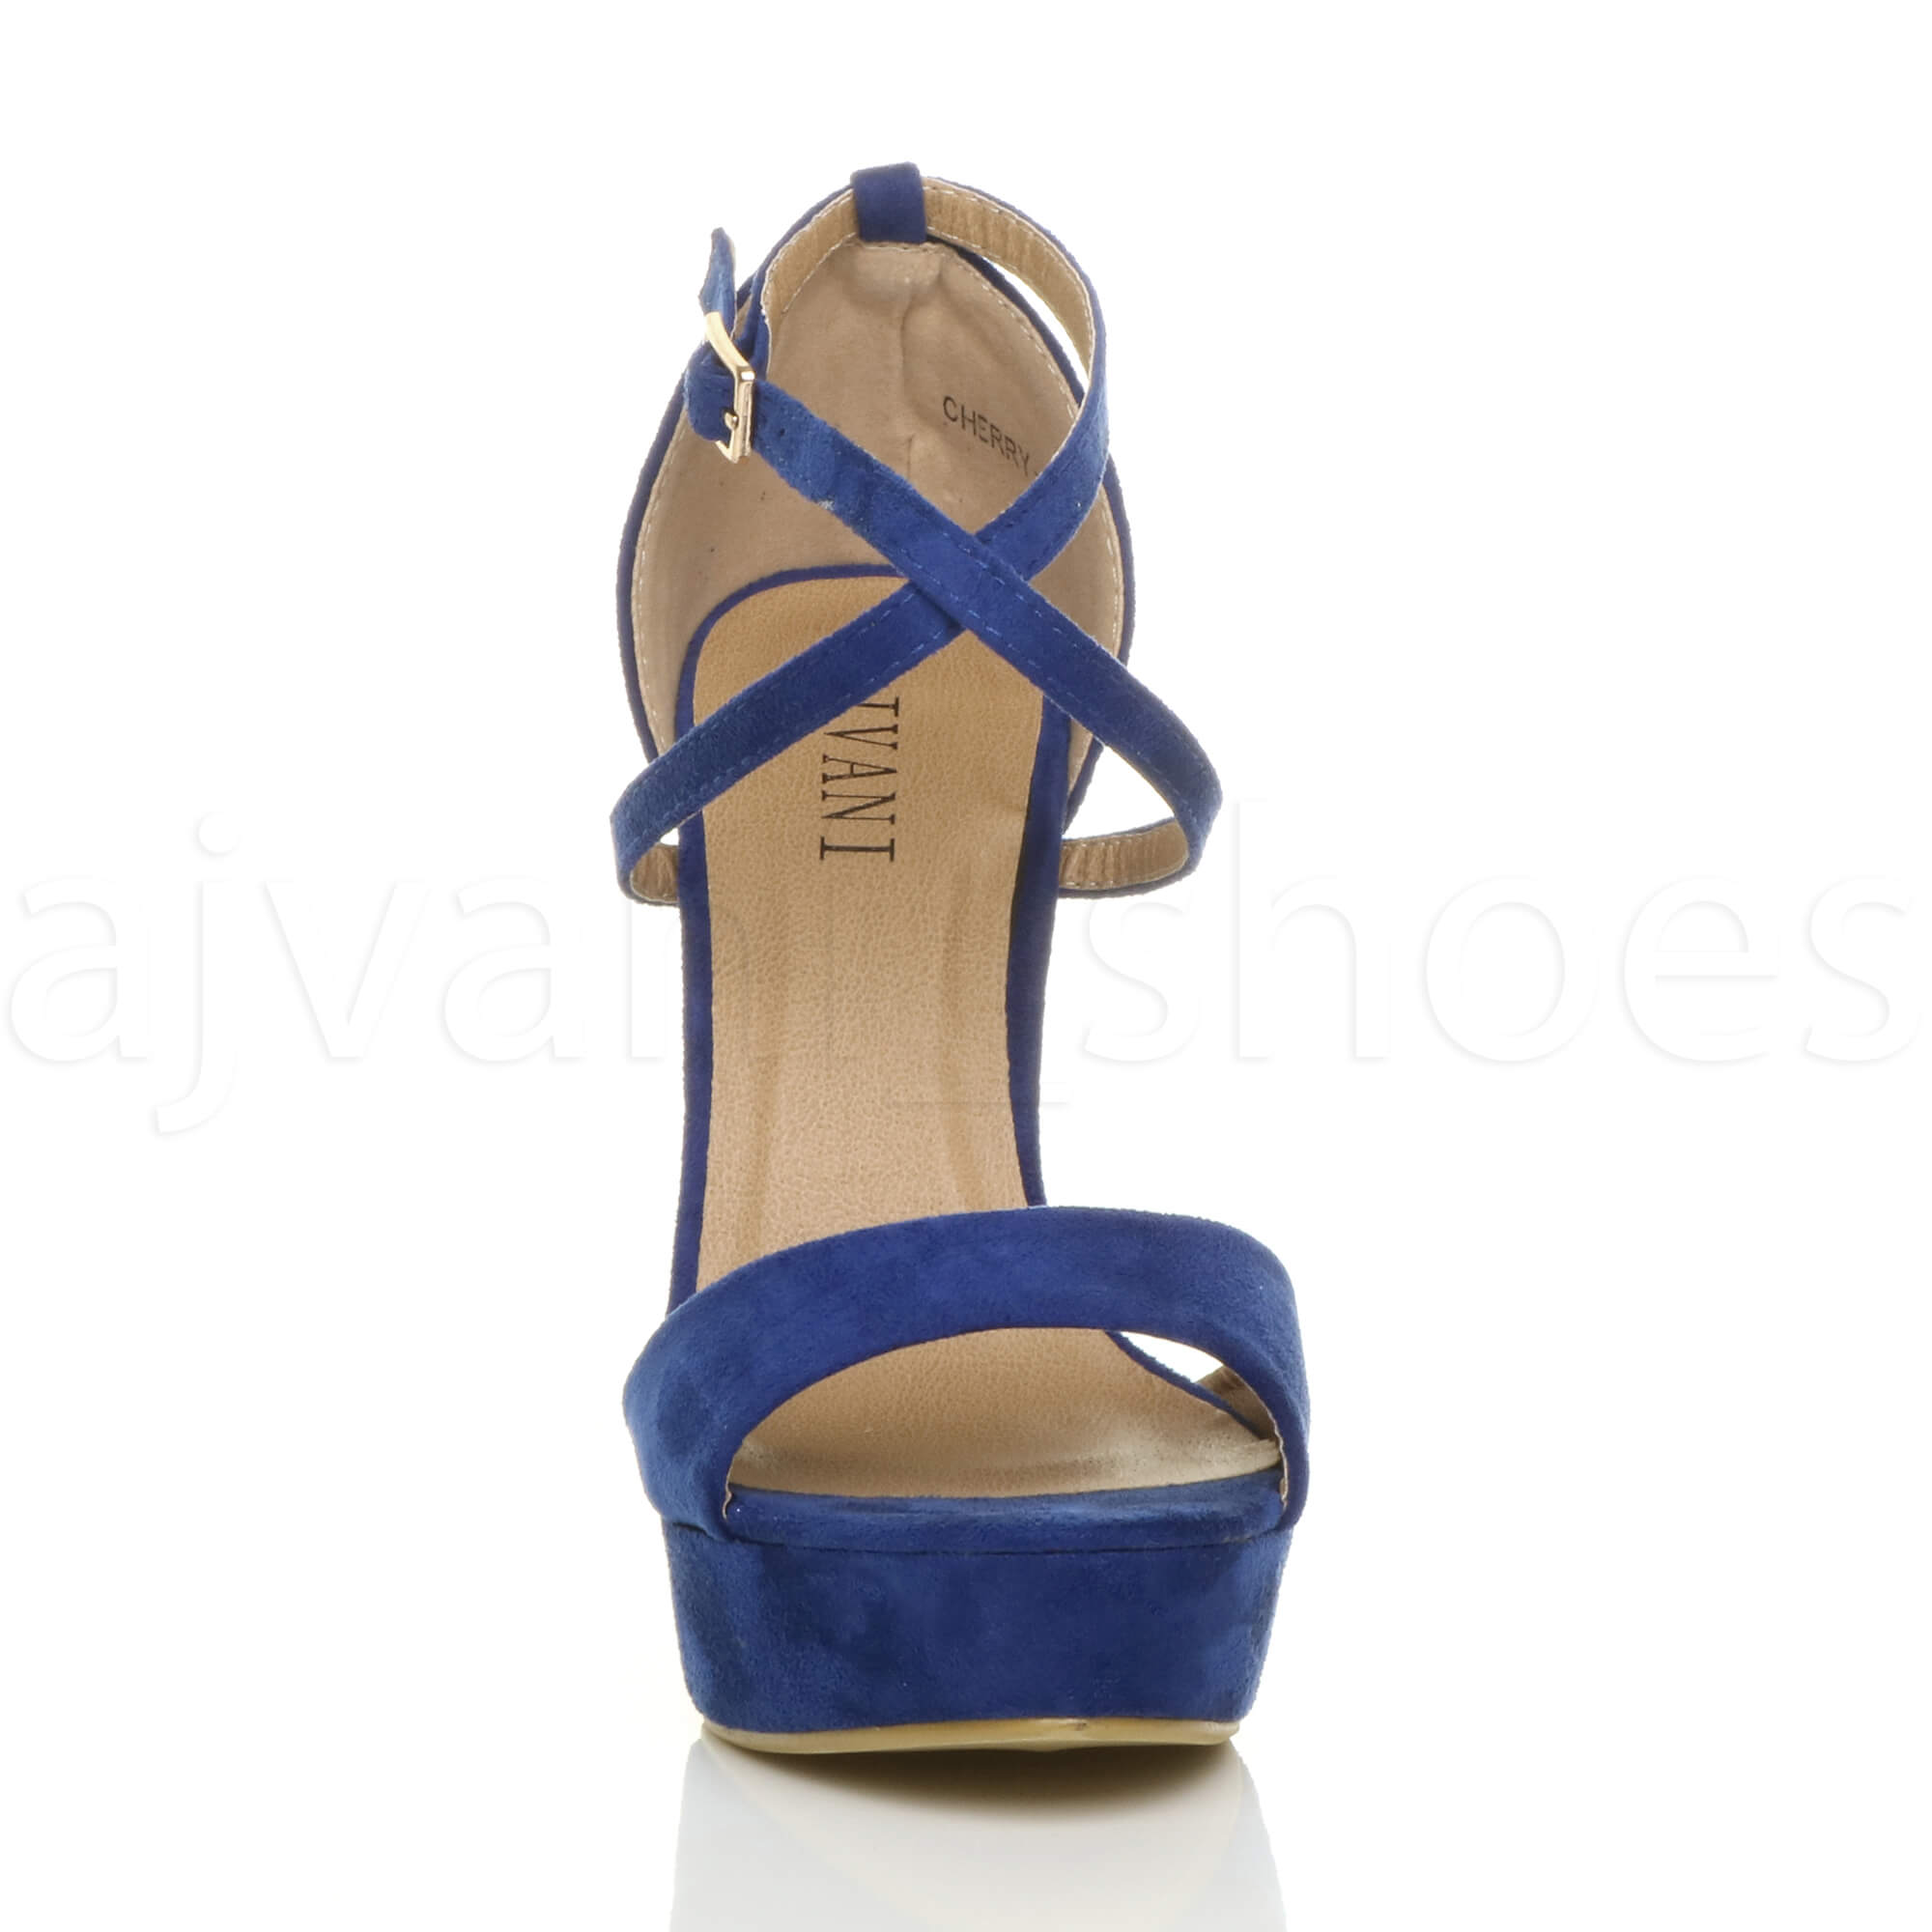 WOMENS-LADIES-PLATFORM-HIGH-HEEL-PEEP-TOE-CROSS-OVER-STRAPPY-SANDALS-SHOES-SIZE